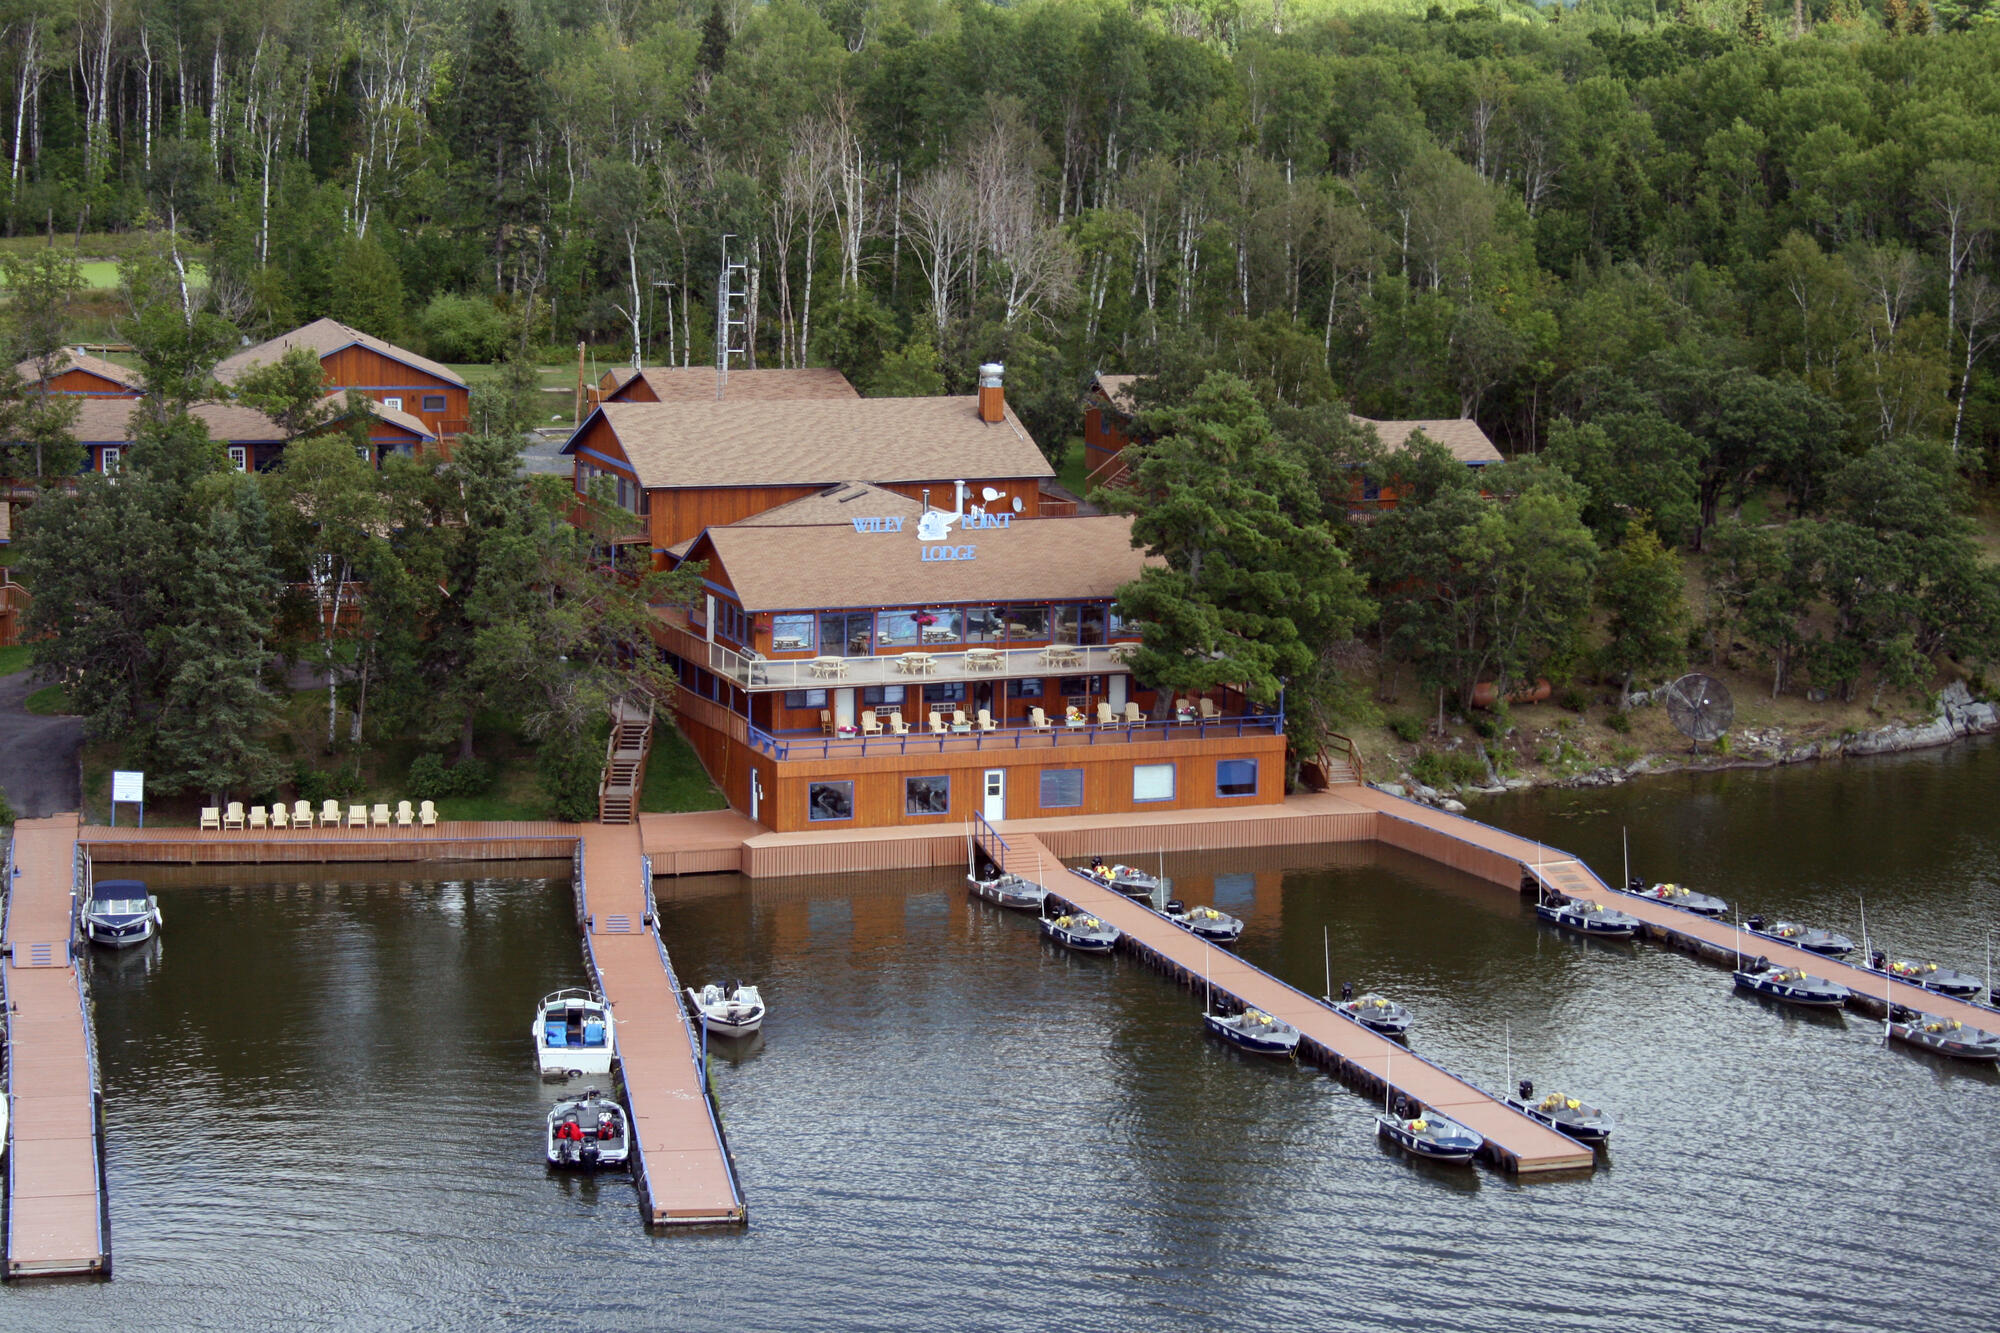 Lake of the woods sioux narrows and wiley point lodge for Lake of the woods fishing lodges